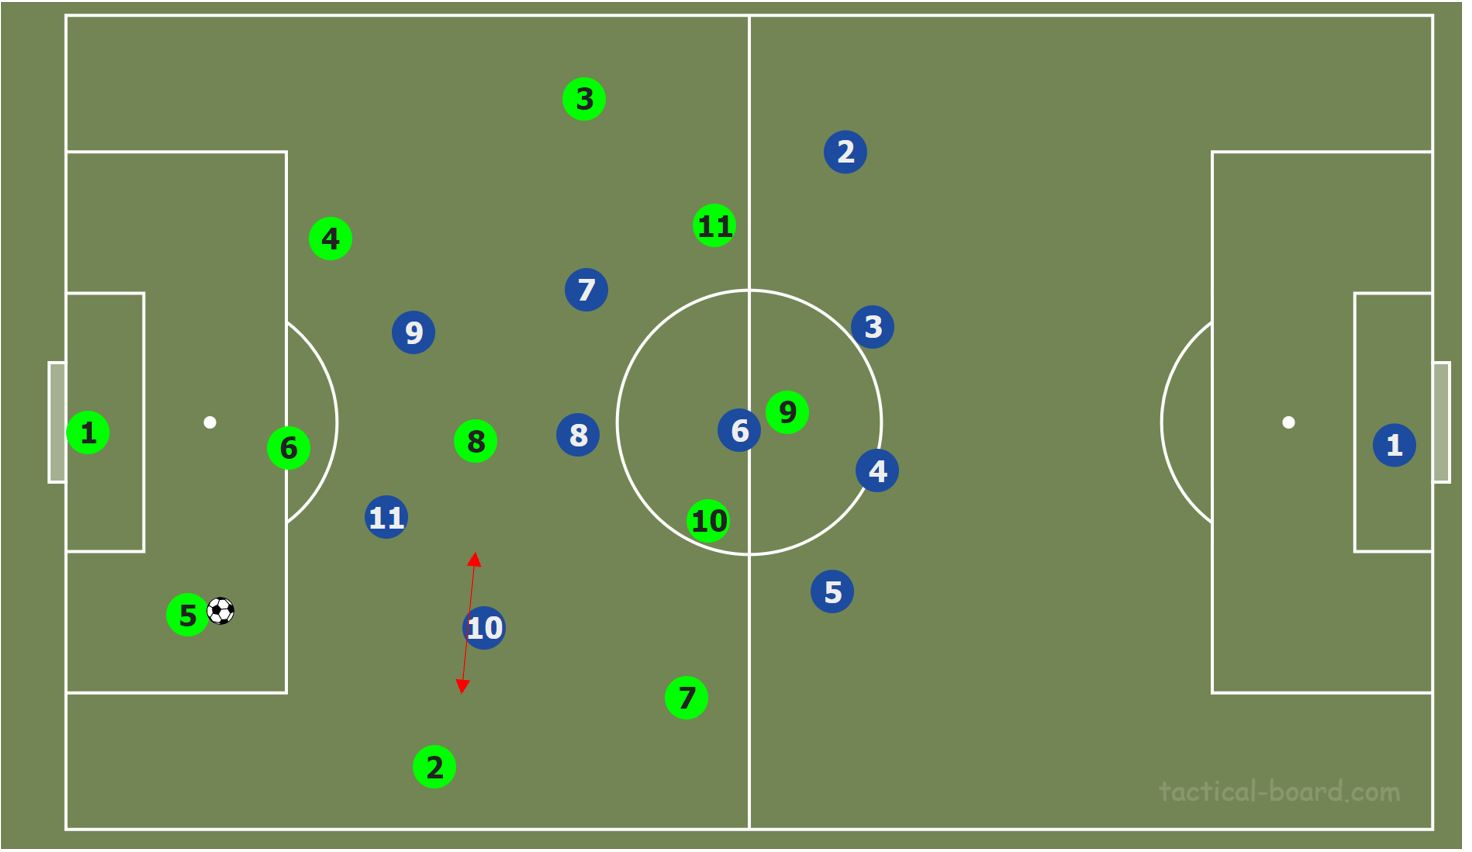 Bundesliga 2019/20: Borussia Monchengladbach vs Schalke- tactical analysis tactics